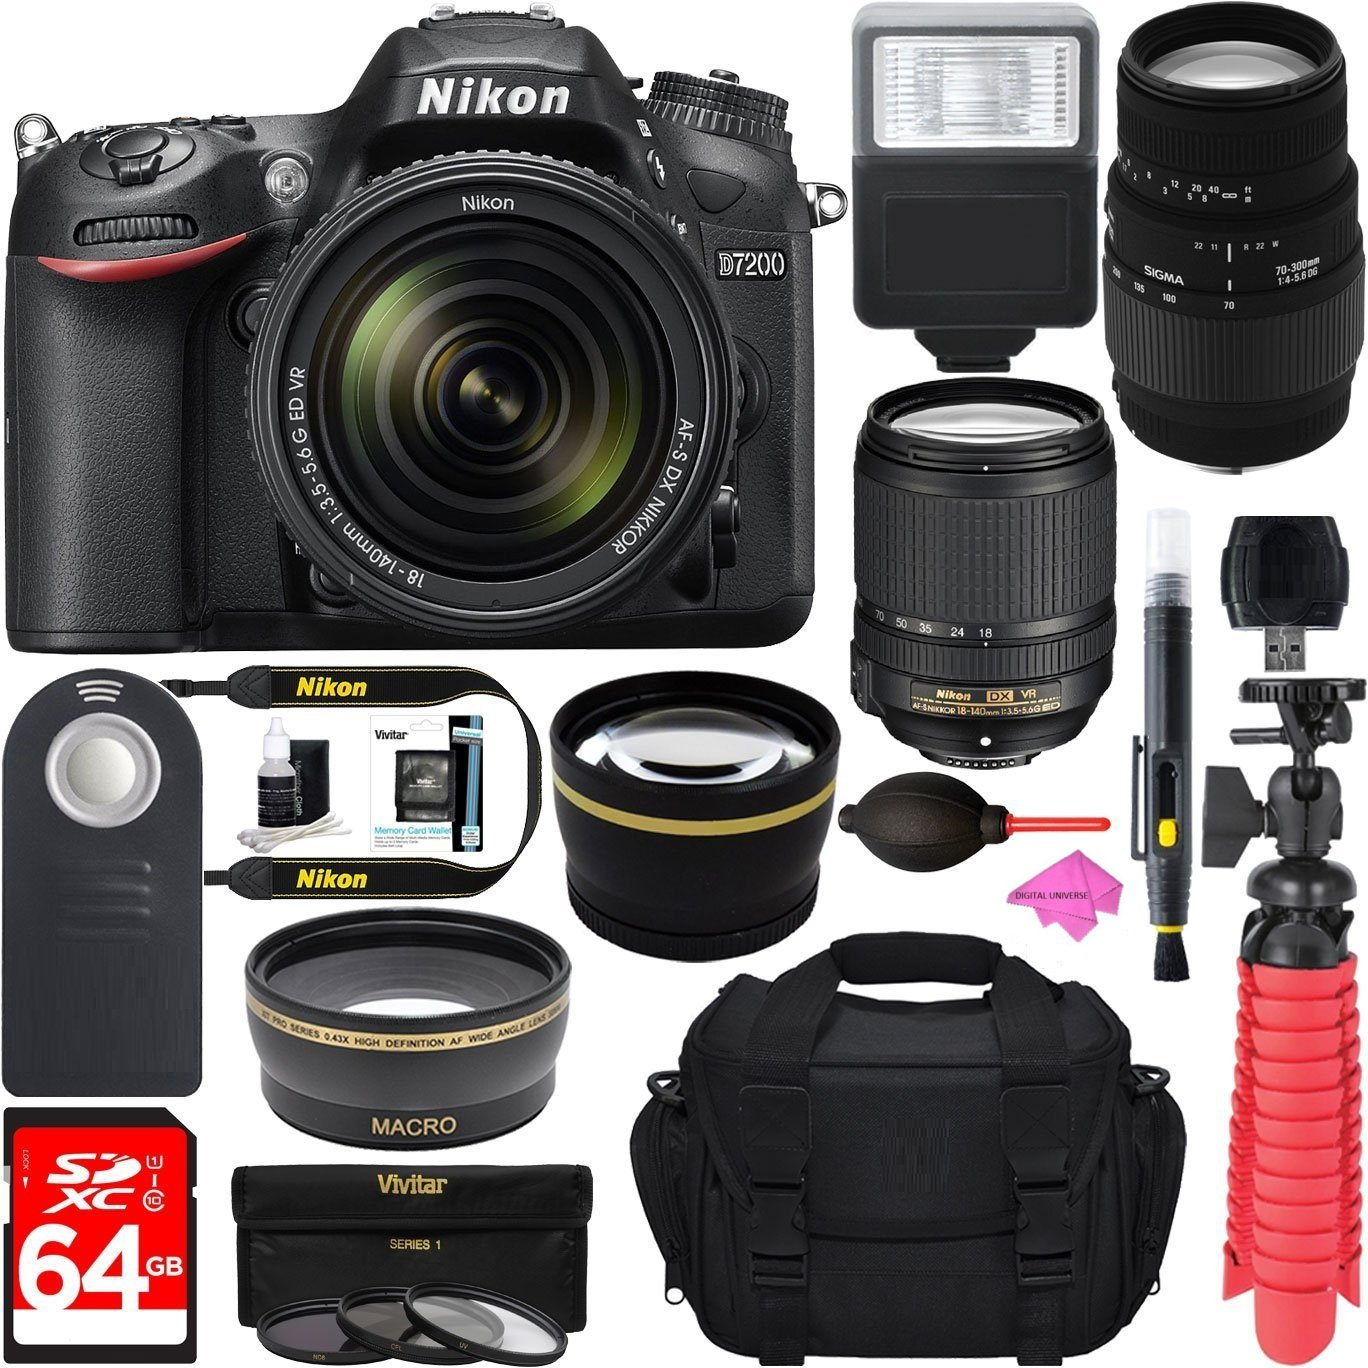 Nikon D7200 Black Digital SLR Camera with 18-140mm VR & 70-300mm f/4-5.6 SLD DG Macro Telephoto Lens + Deluxe Microfiber Cleaning Kit + 64GB Memory Card + Free Premium PRO Accessory Bundle